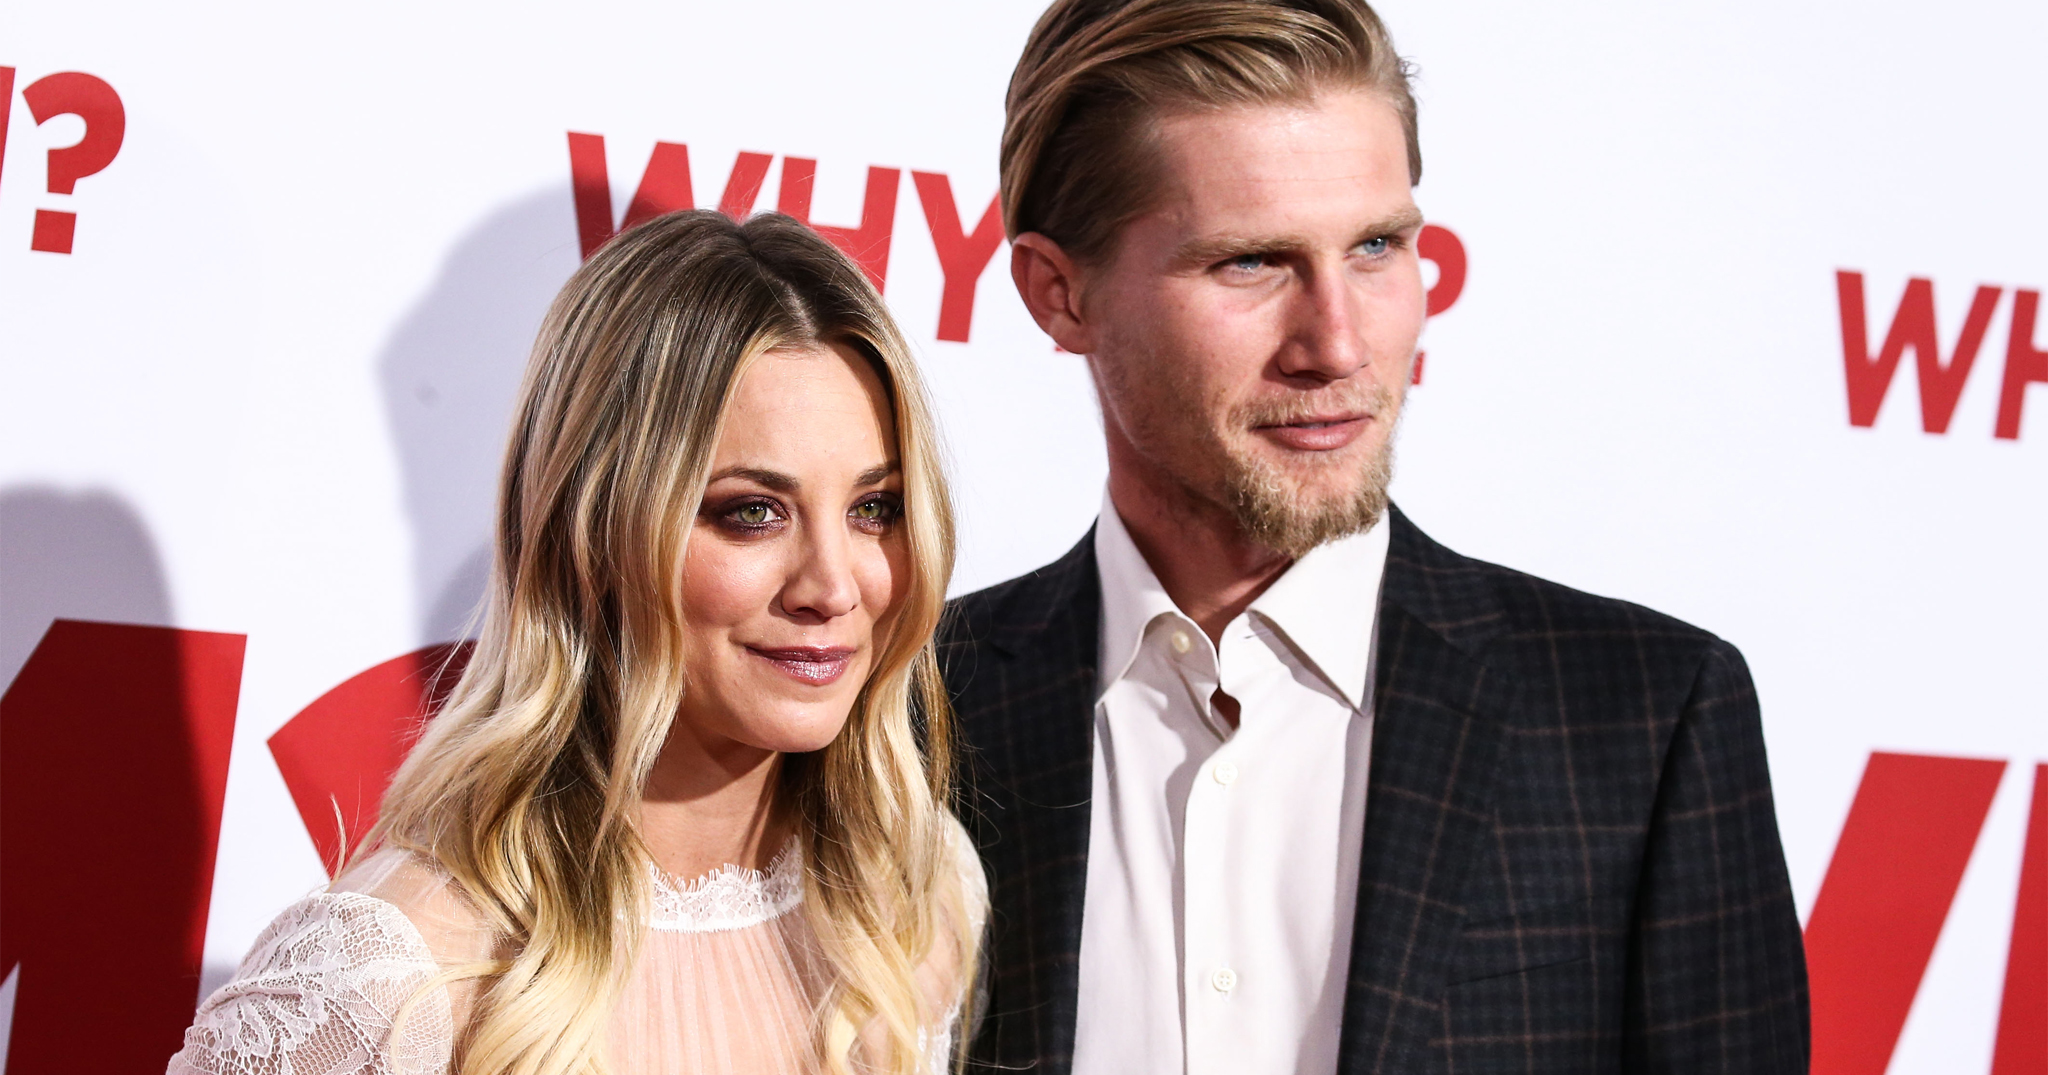 BridalPulse: 'Big Bang Theory' Star Kaley Cuoco Is Engaged to Boyfriend Karl Cook | Photo: Splash News | Follow @bridalpulse for more wedding inspiration!